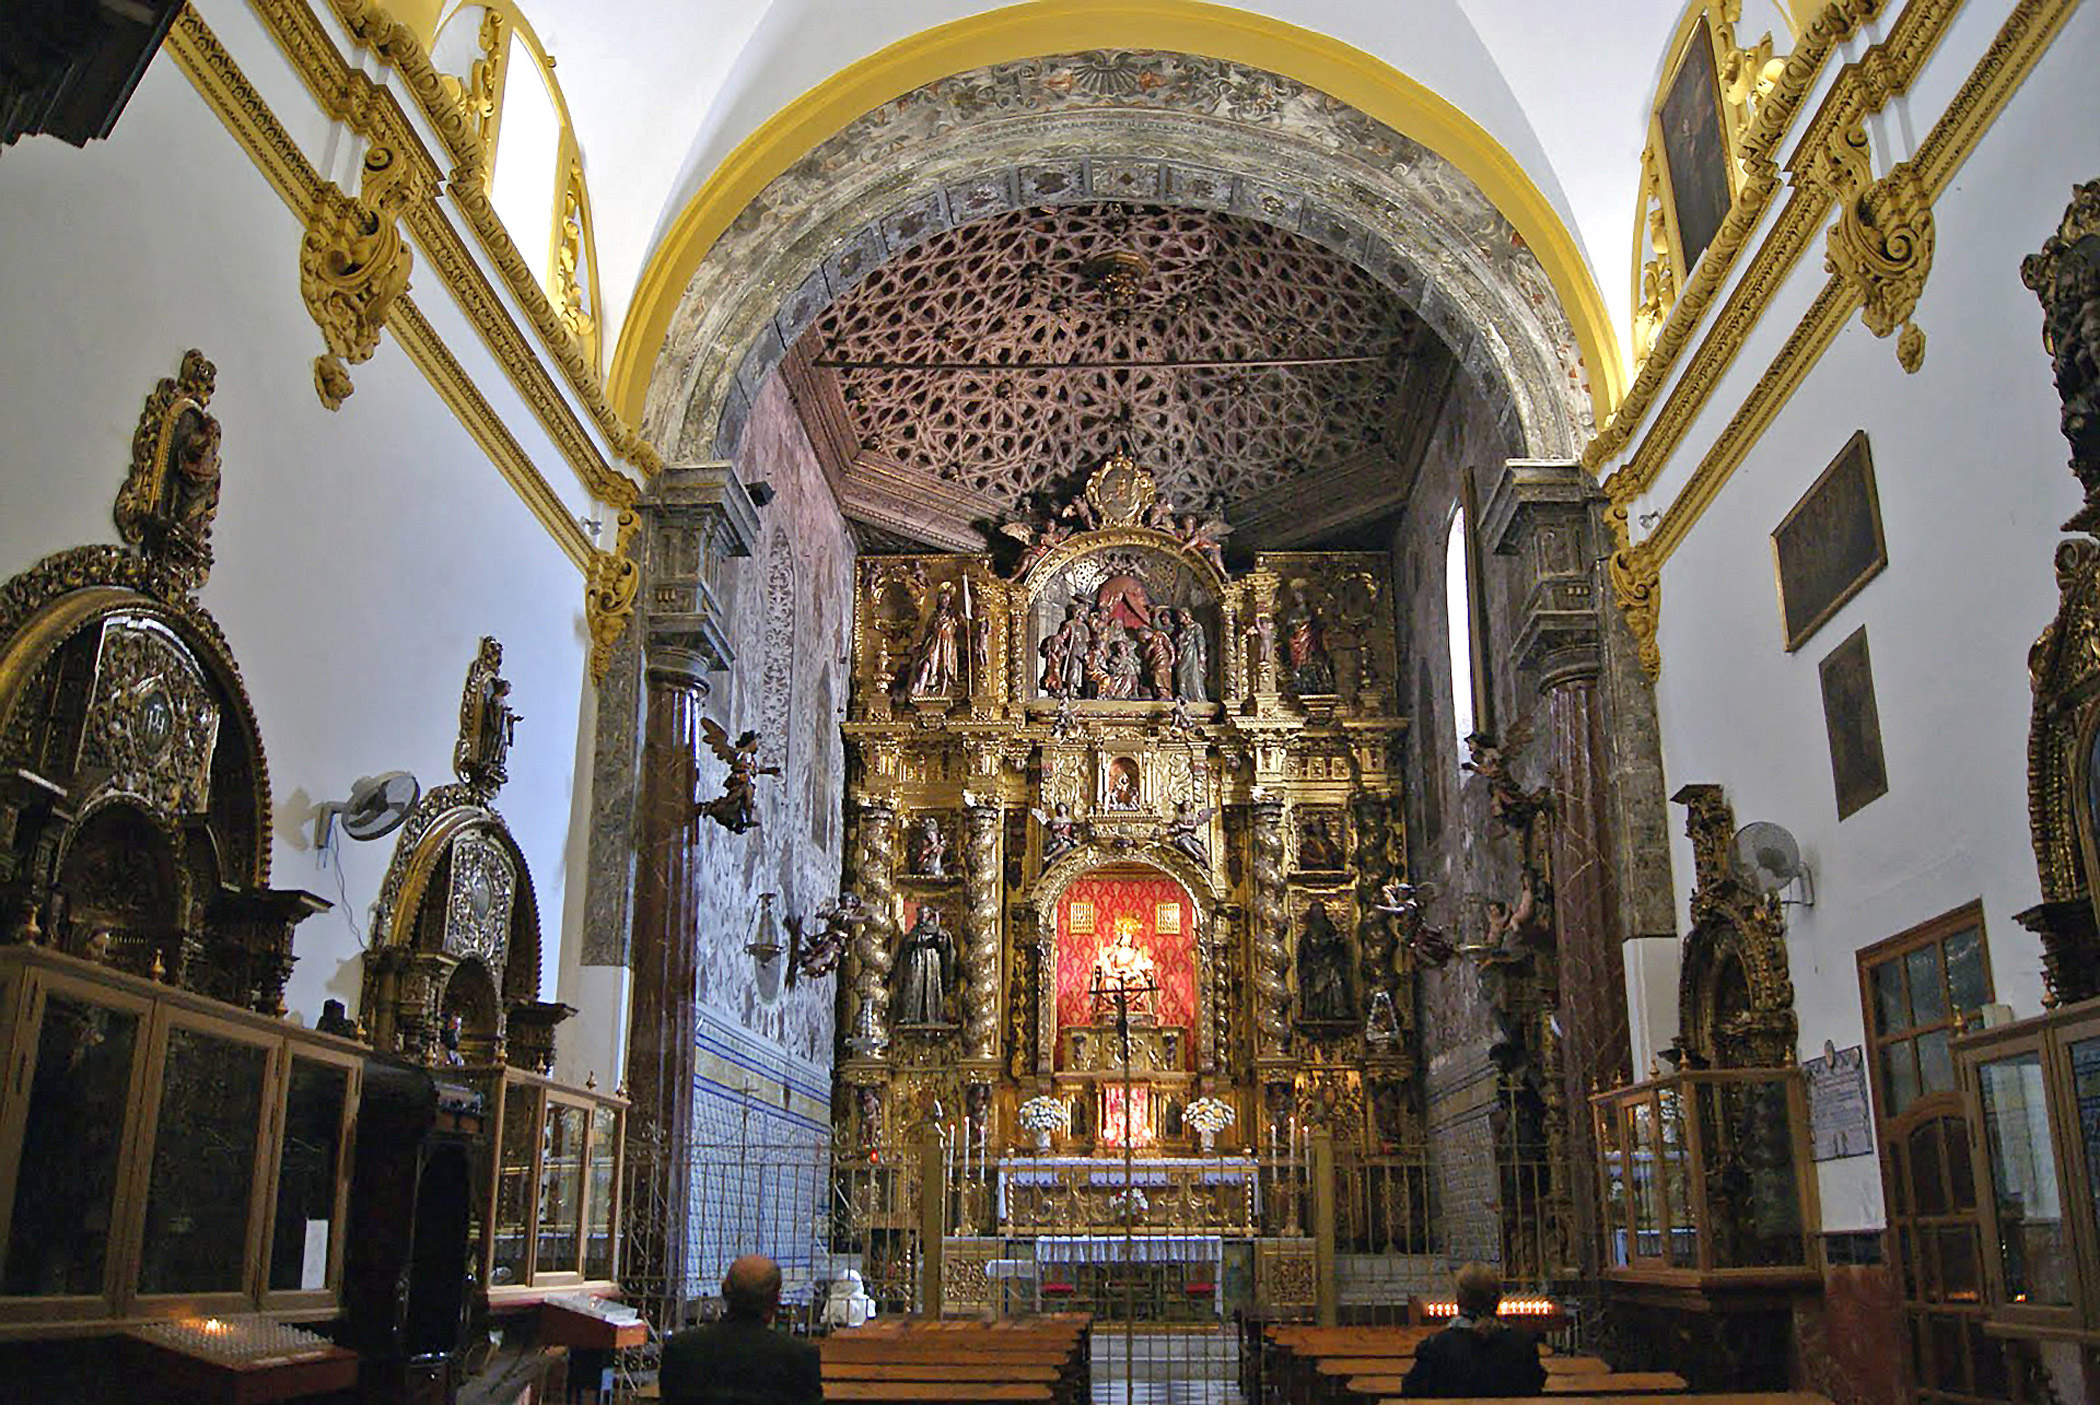 Spain, Convents of                               Seville: The dwindling monastic vocation poses a serious challenge to the future of Seville's remaining cloistered convents.